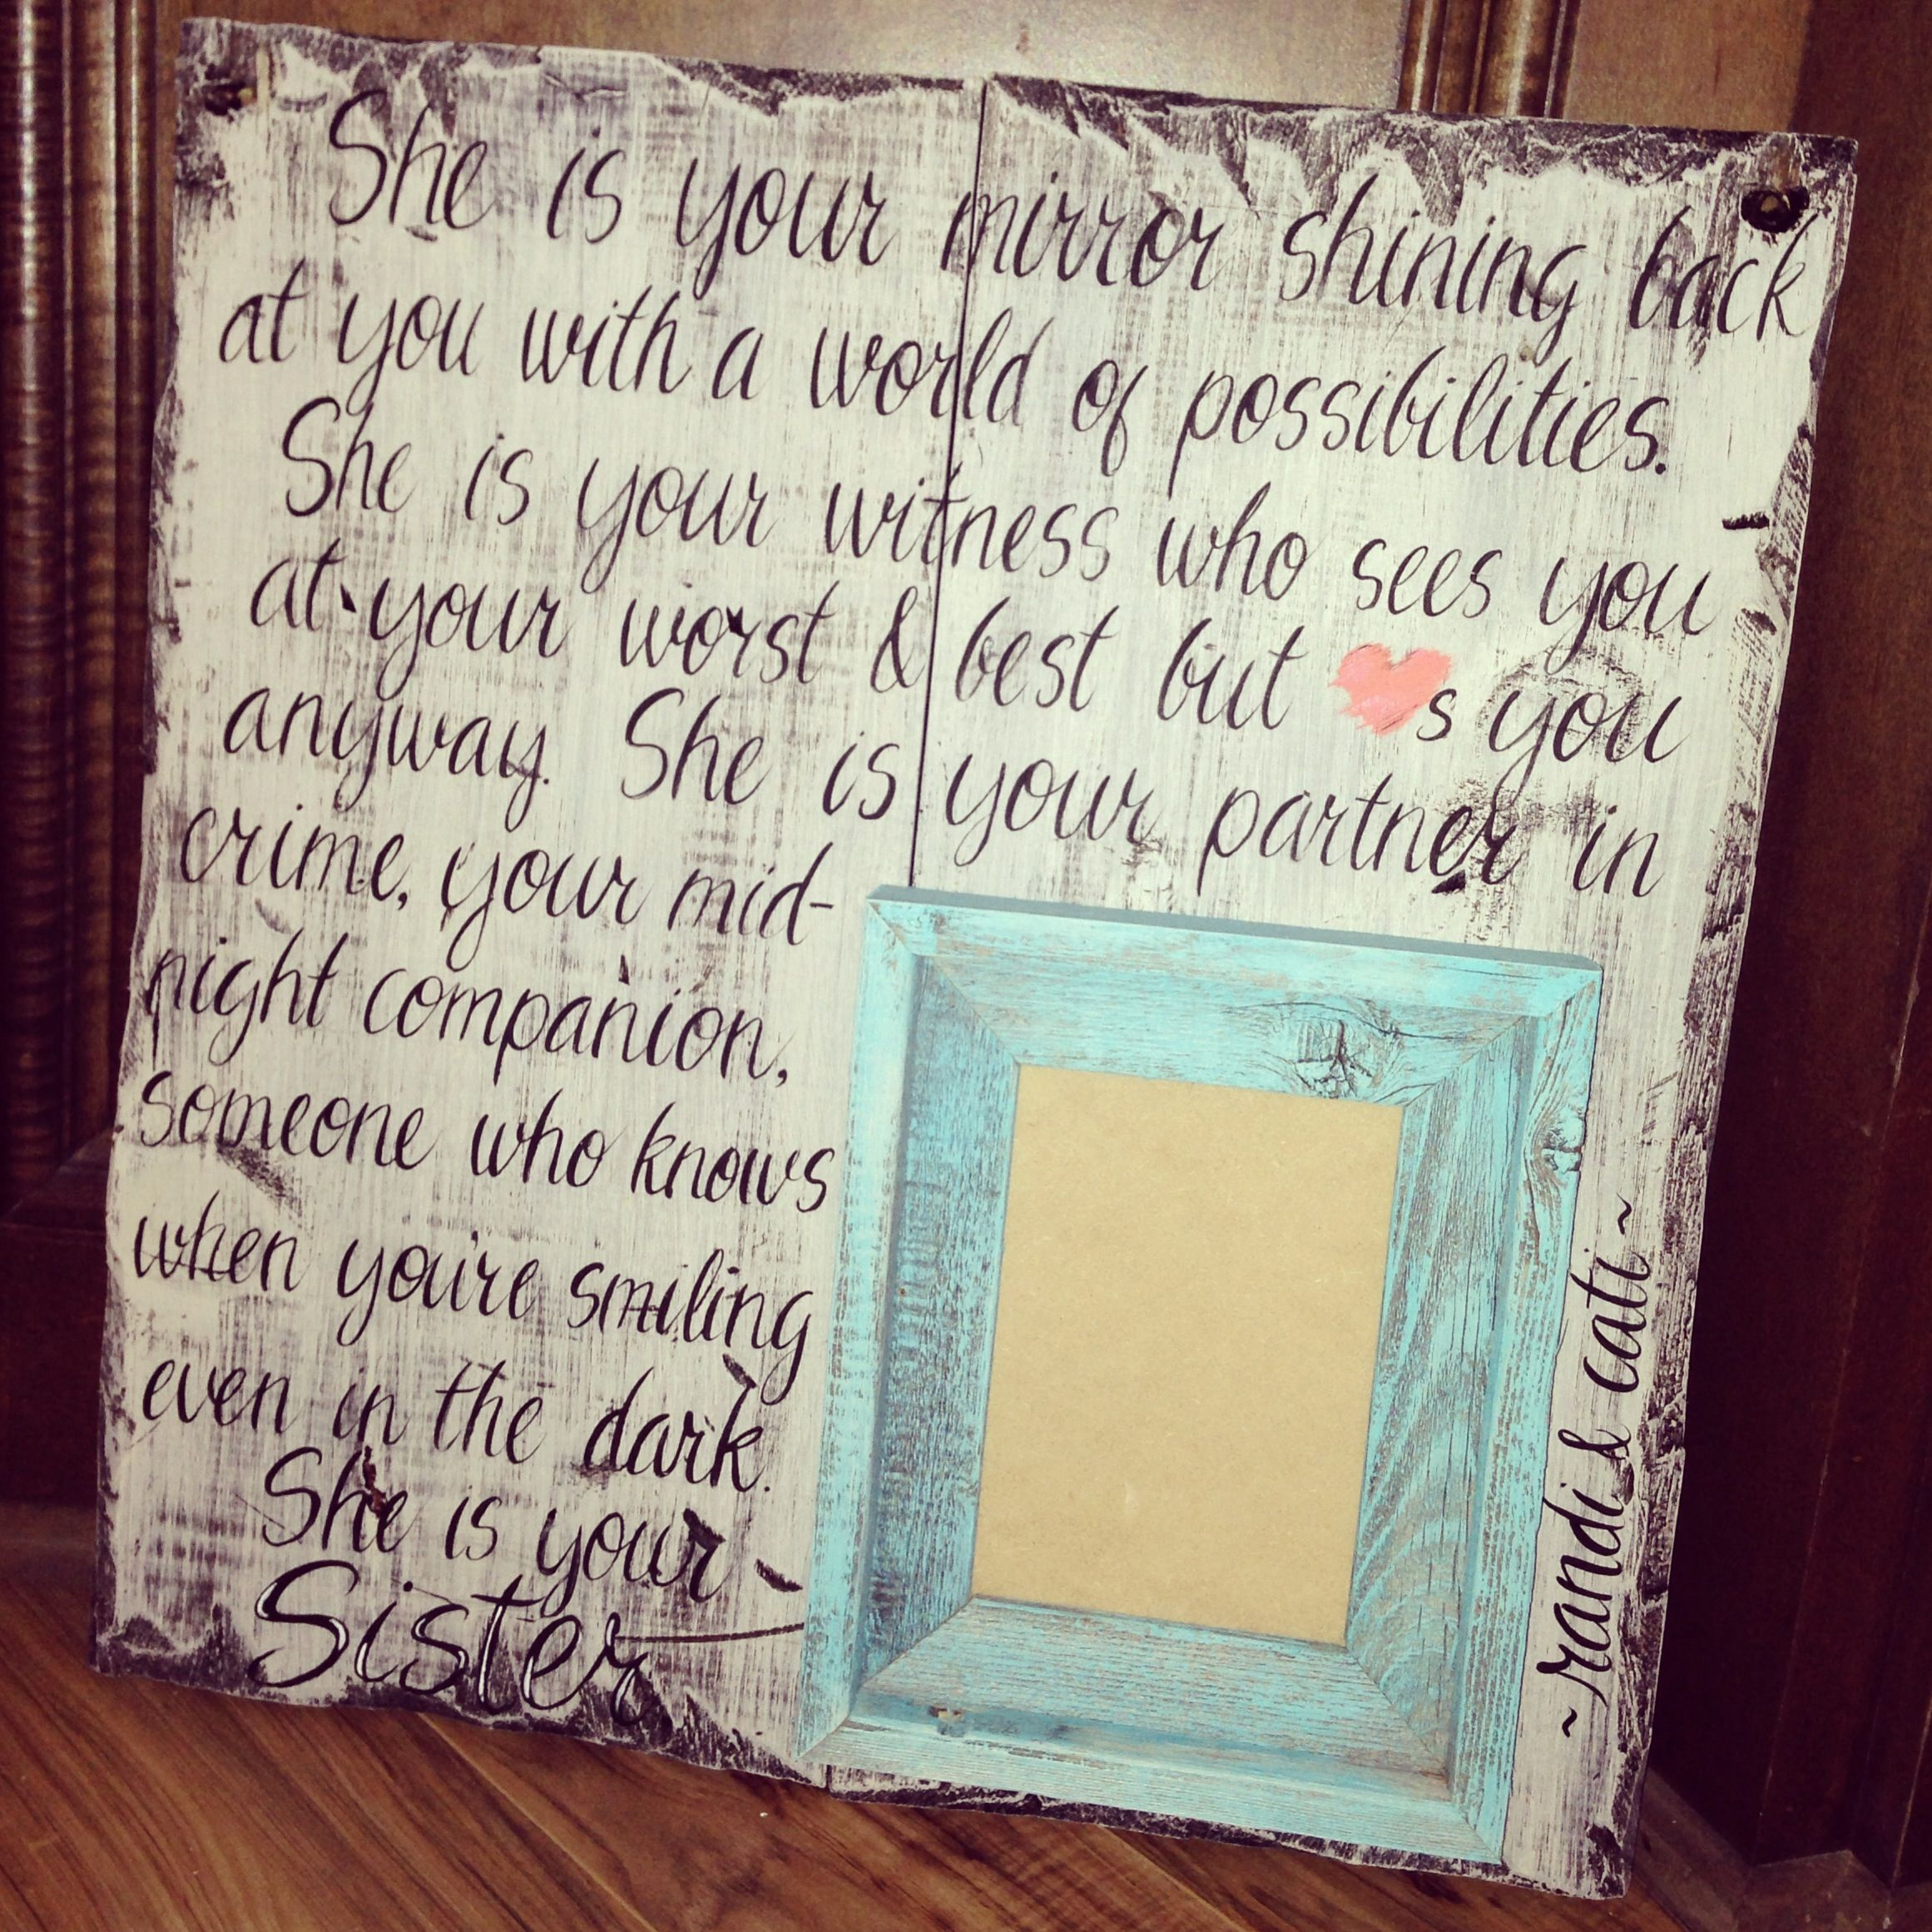 612c65ea5288 Handcrafted with picture frame built in. Great for a best friend ...